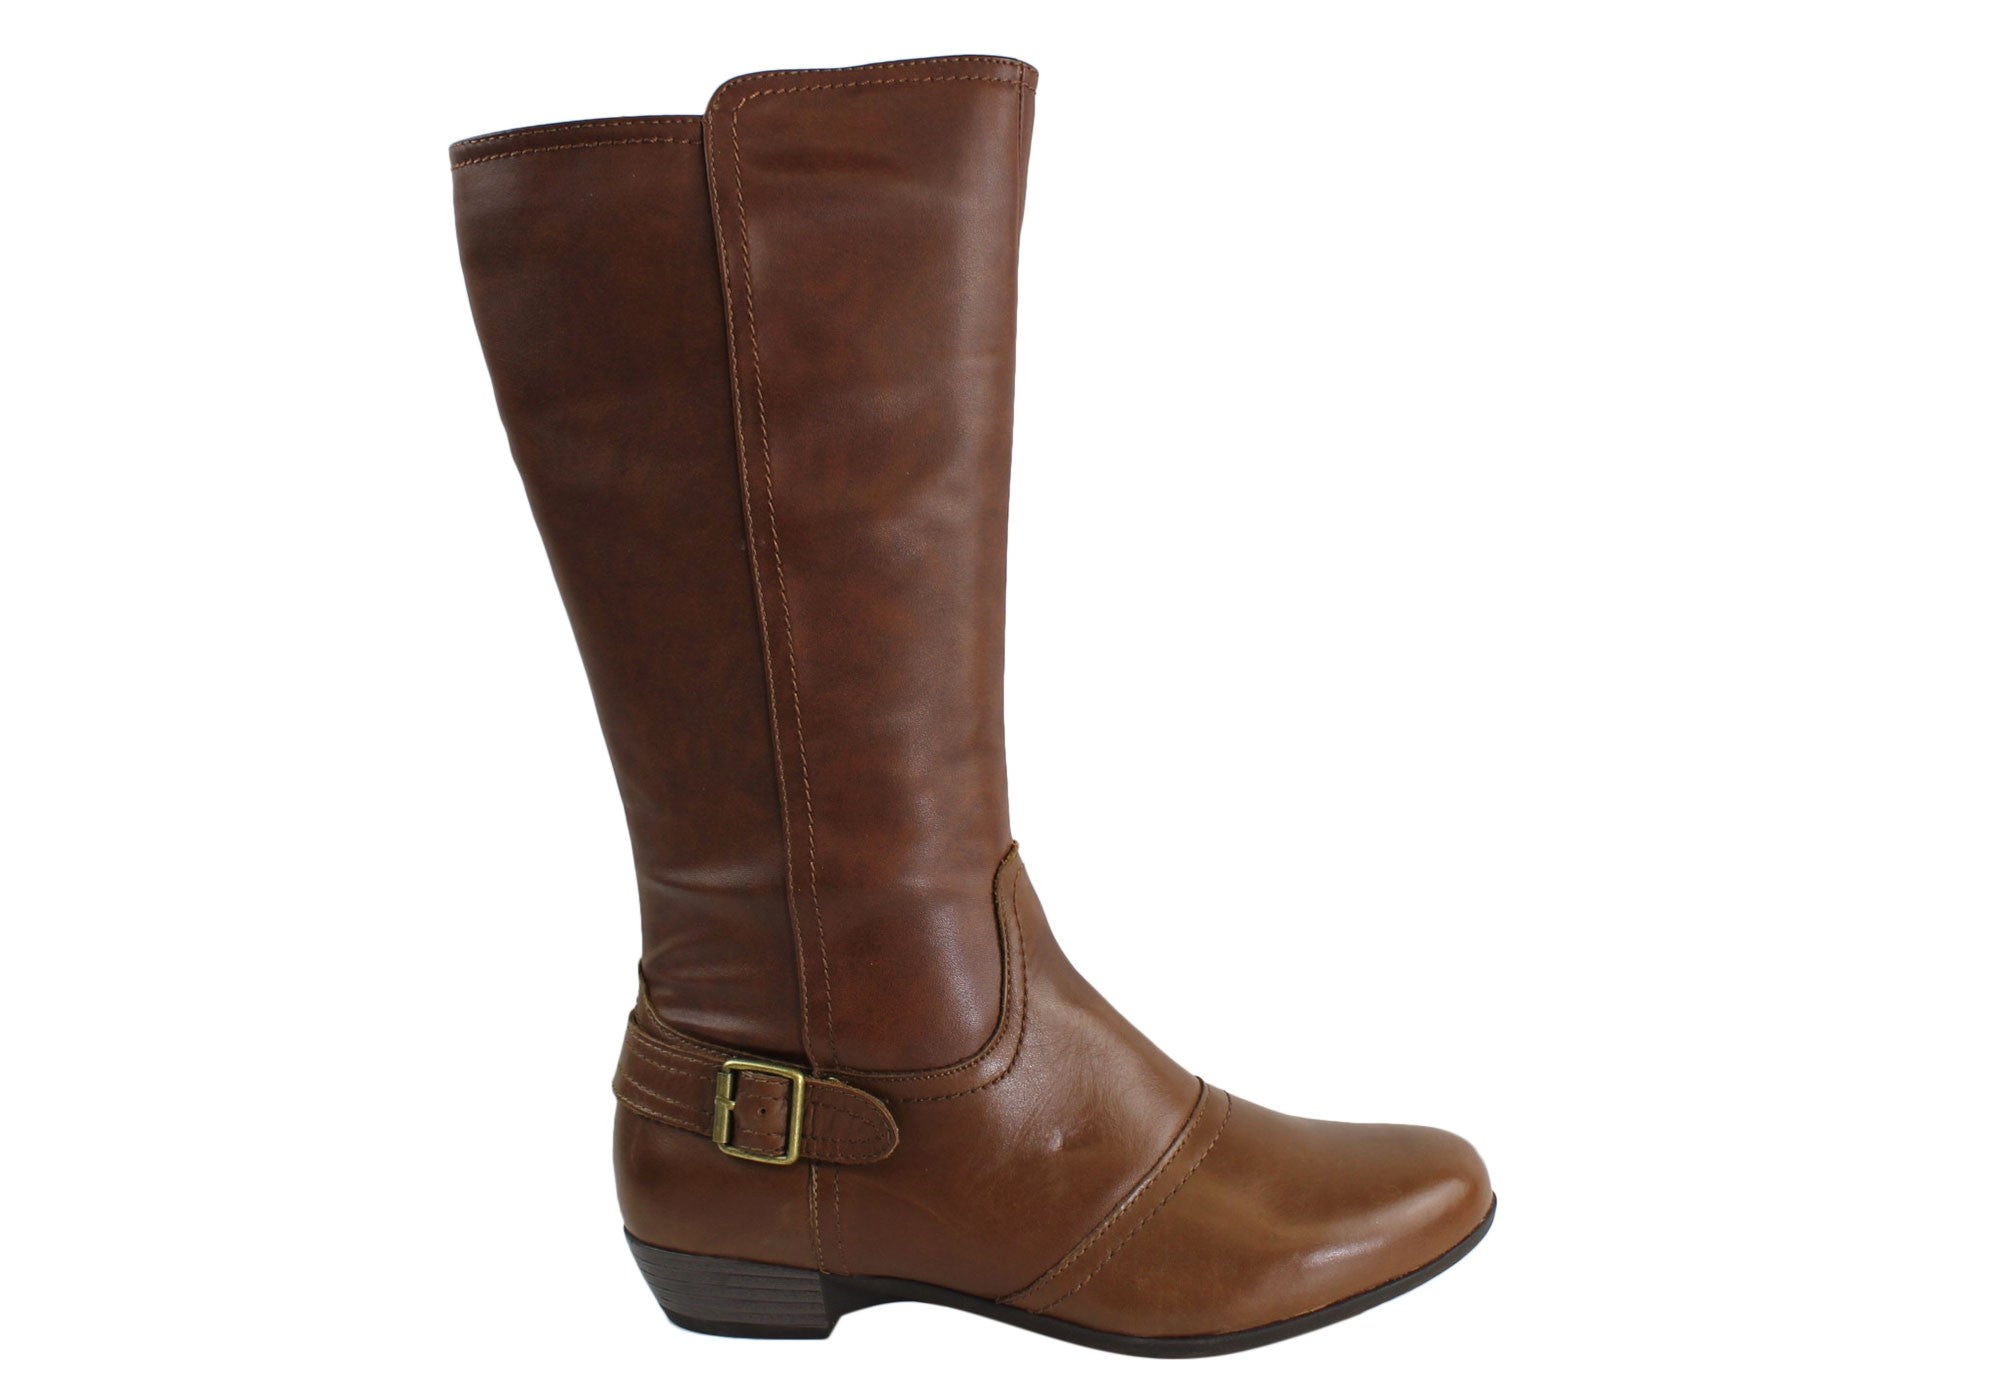 0b412d4c2189 Cushion Comfort Anouk Womens Leather Comfortable Boots